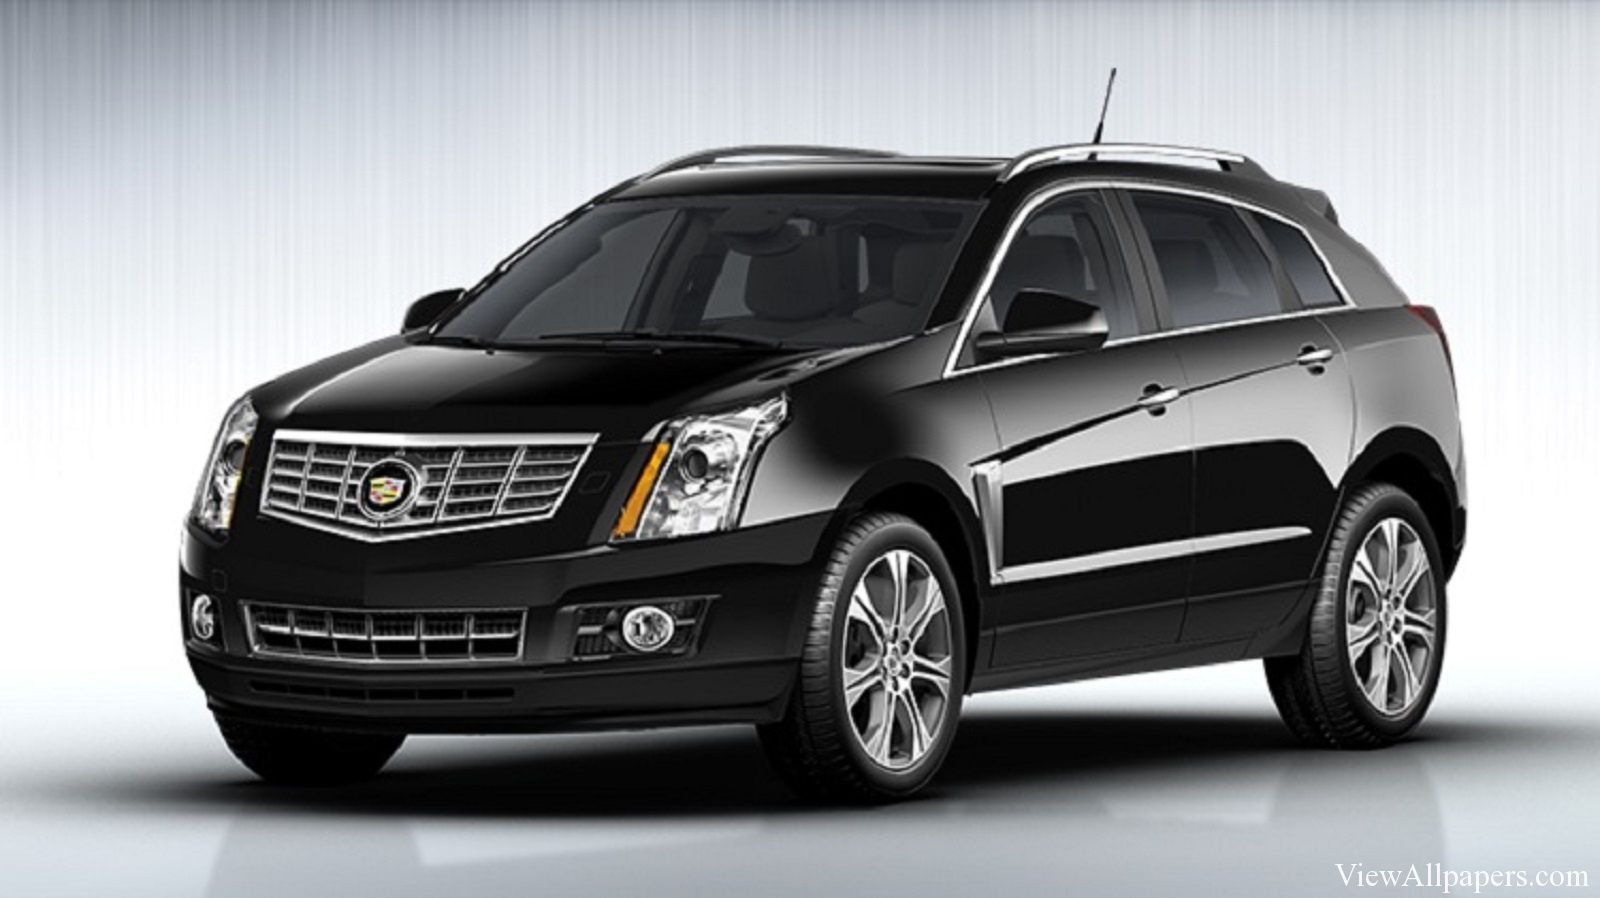 New 2017 Cadillac SRX Redesign